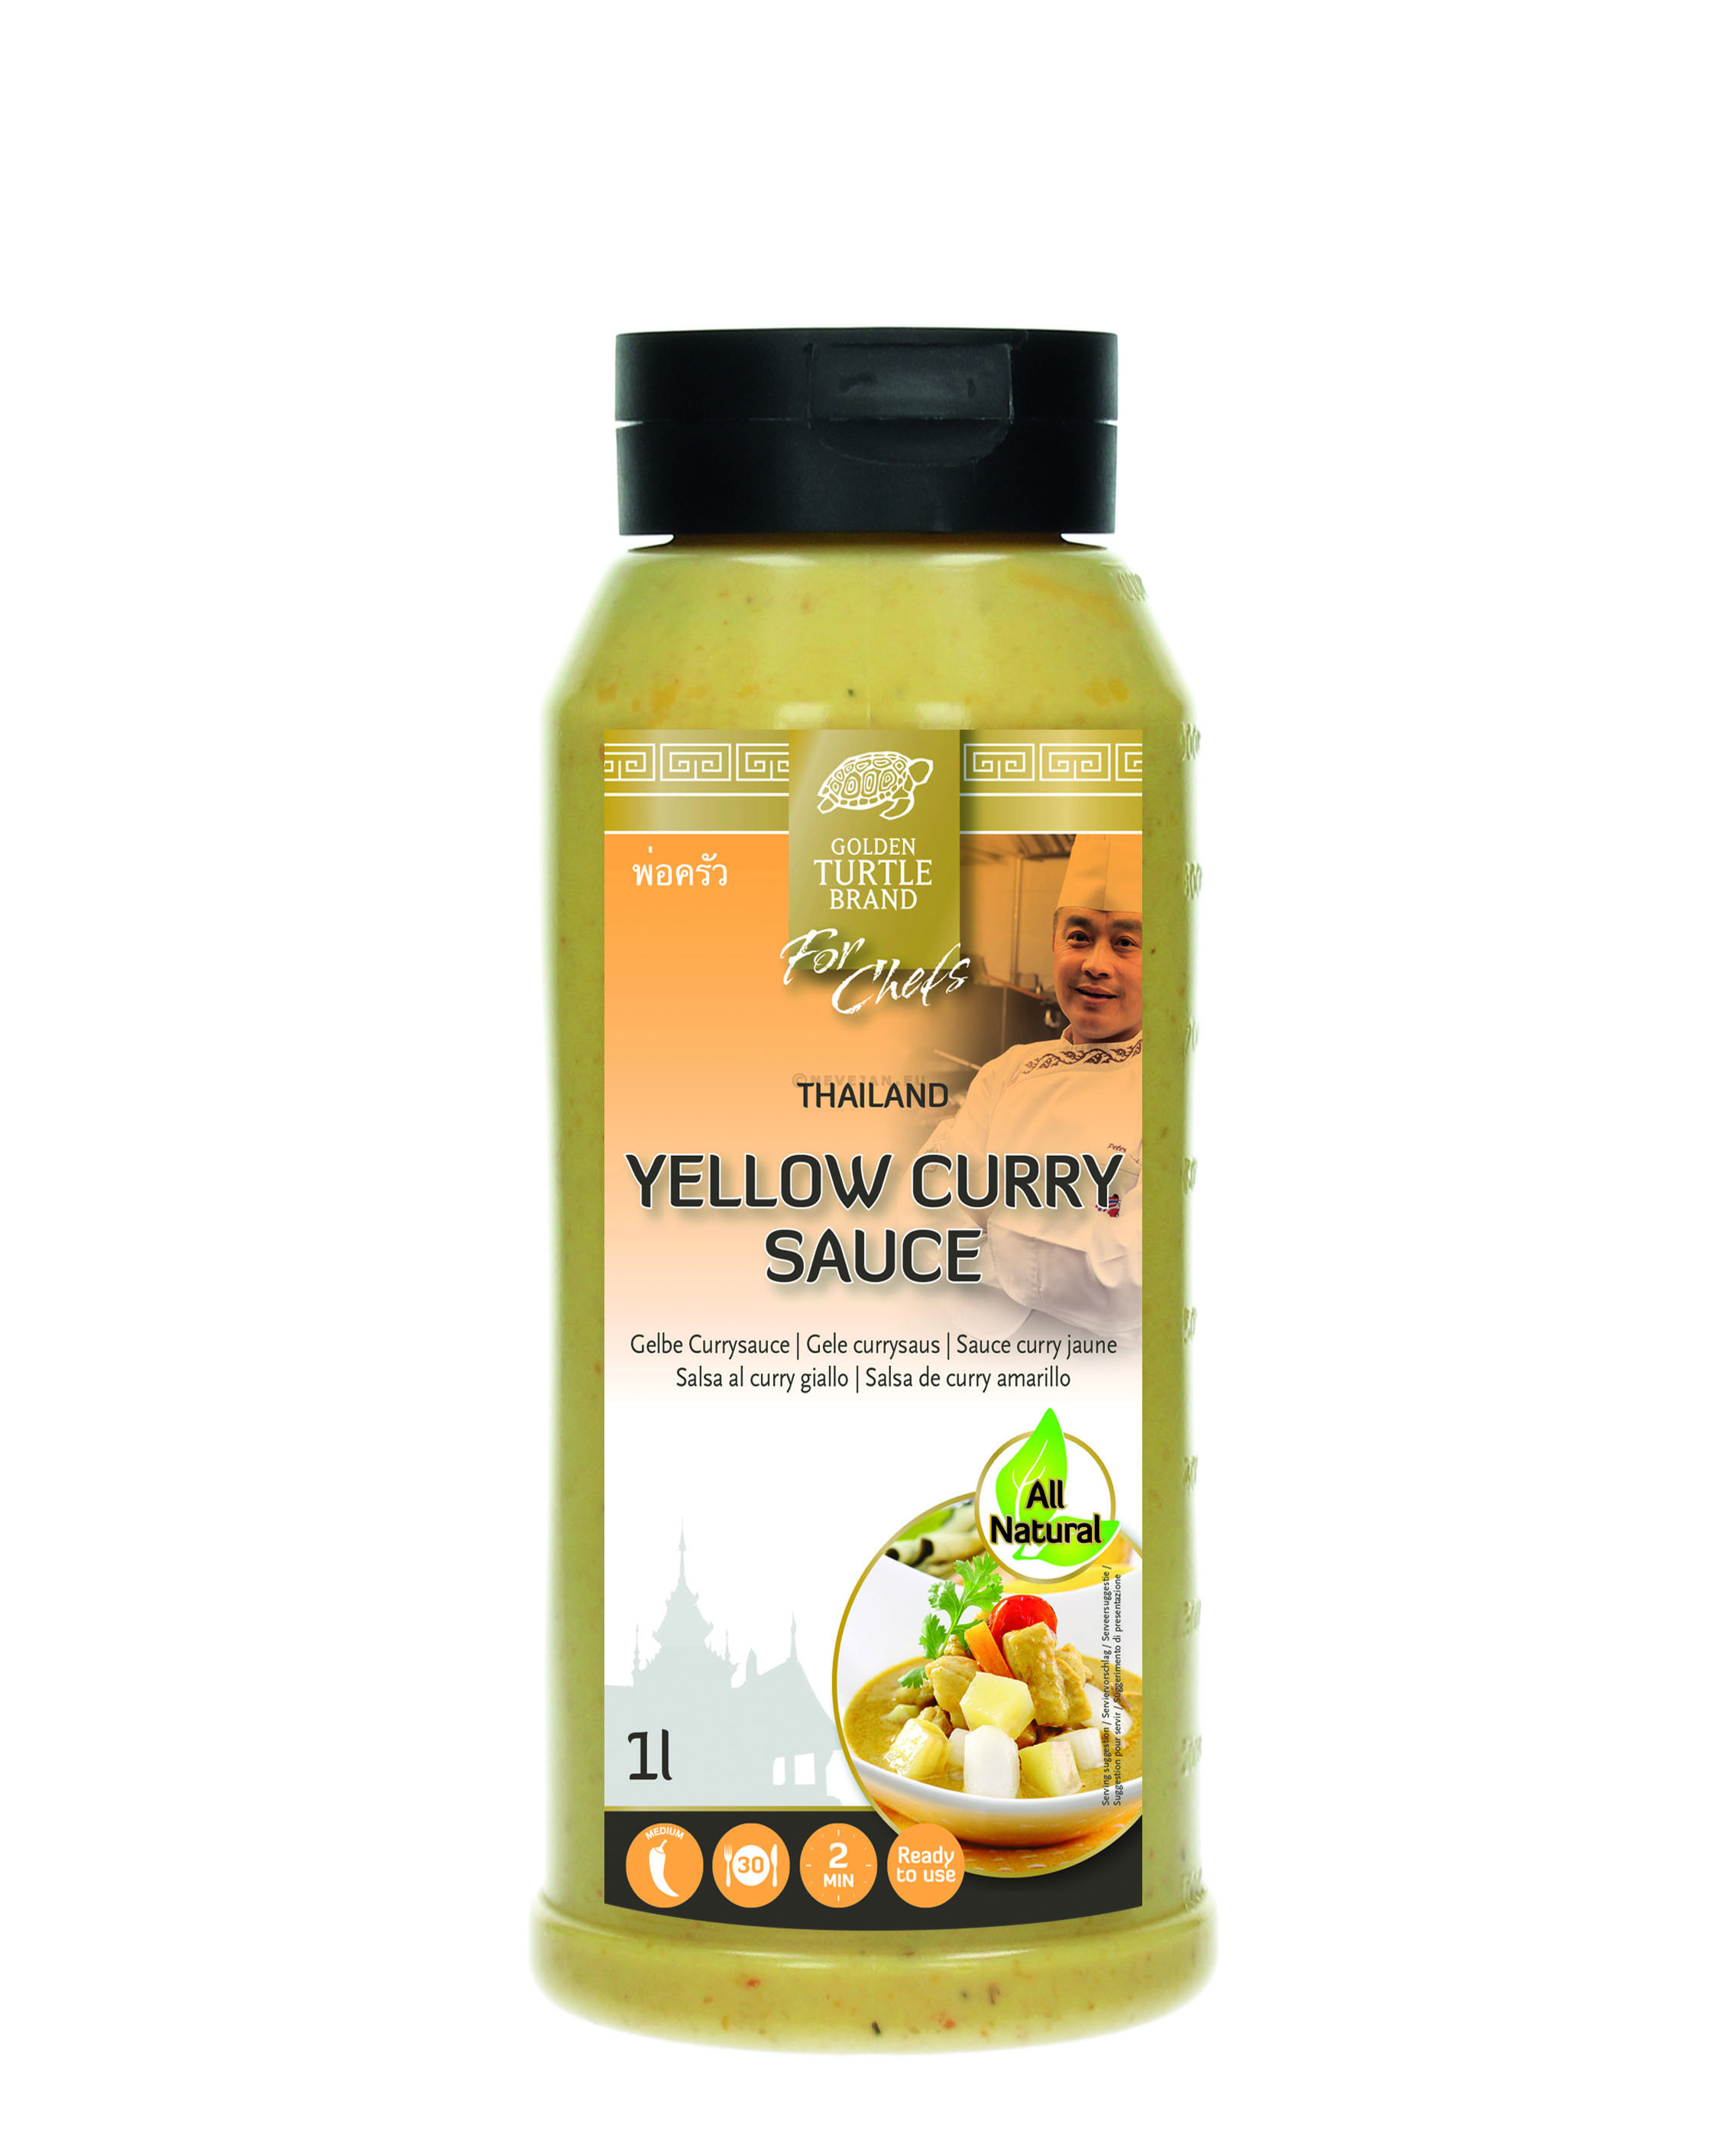 Thai Yellow Curry Sauce 1L Golden Turtle Brand